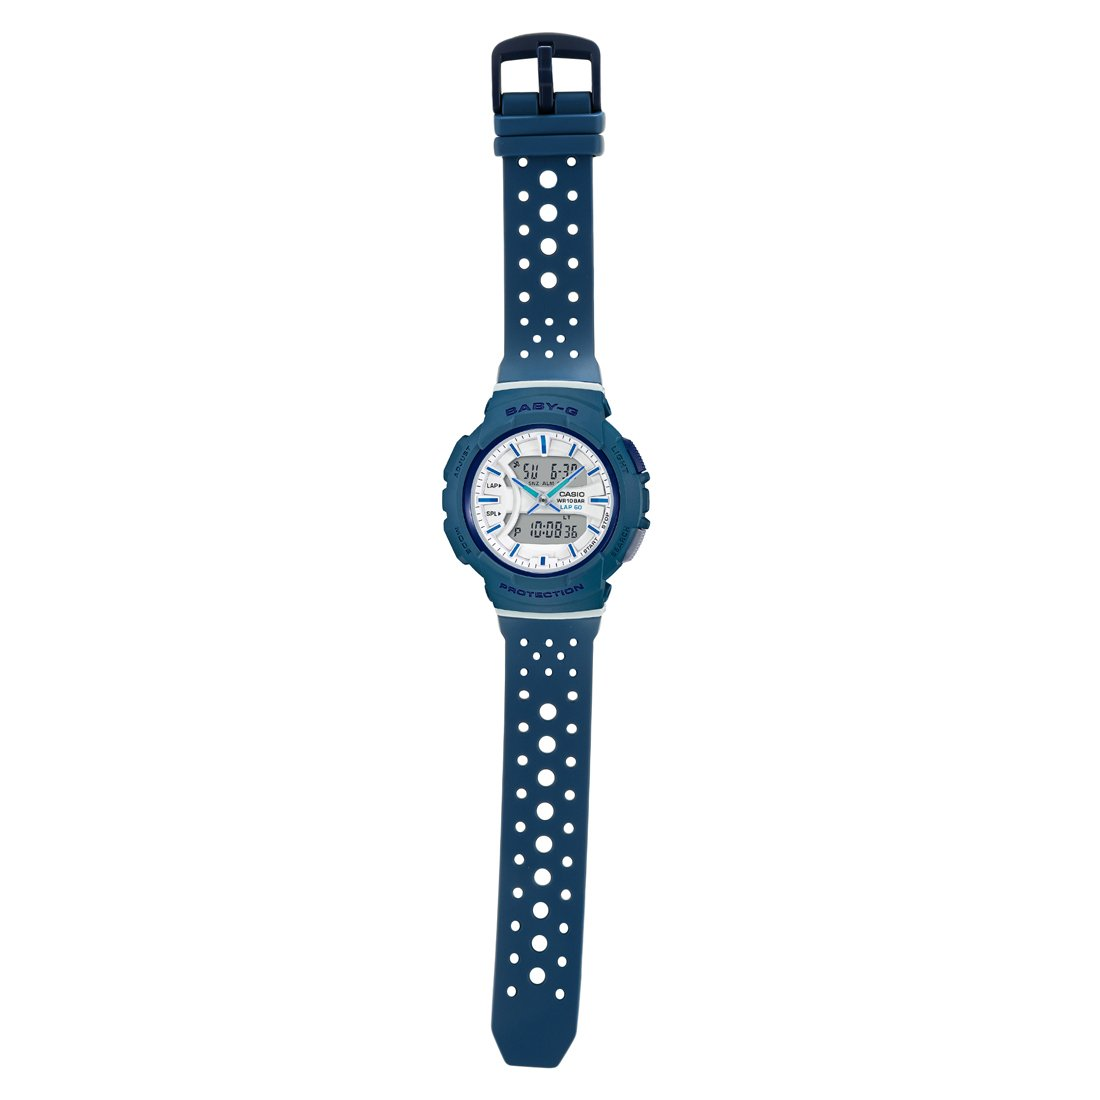 e0164fd04221 Buy Casio Baby-g Analog-Digital White Dial Women's Watch - BX093  (BGA-240-2A2DR) Online at Low Prices in India - Amazon.in